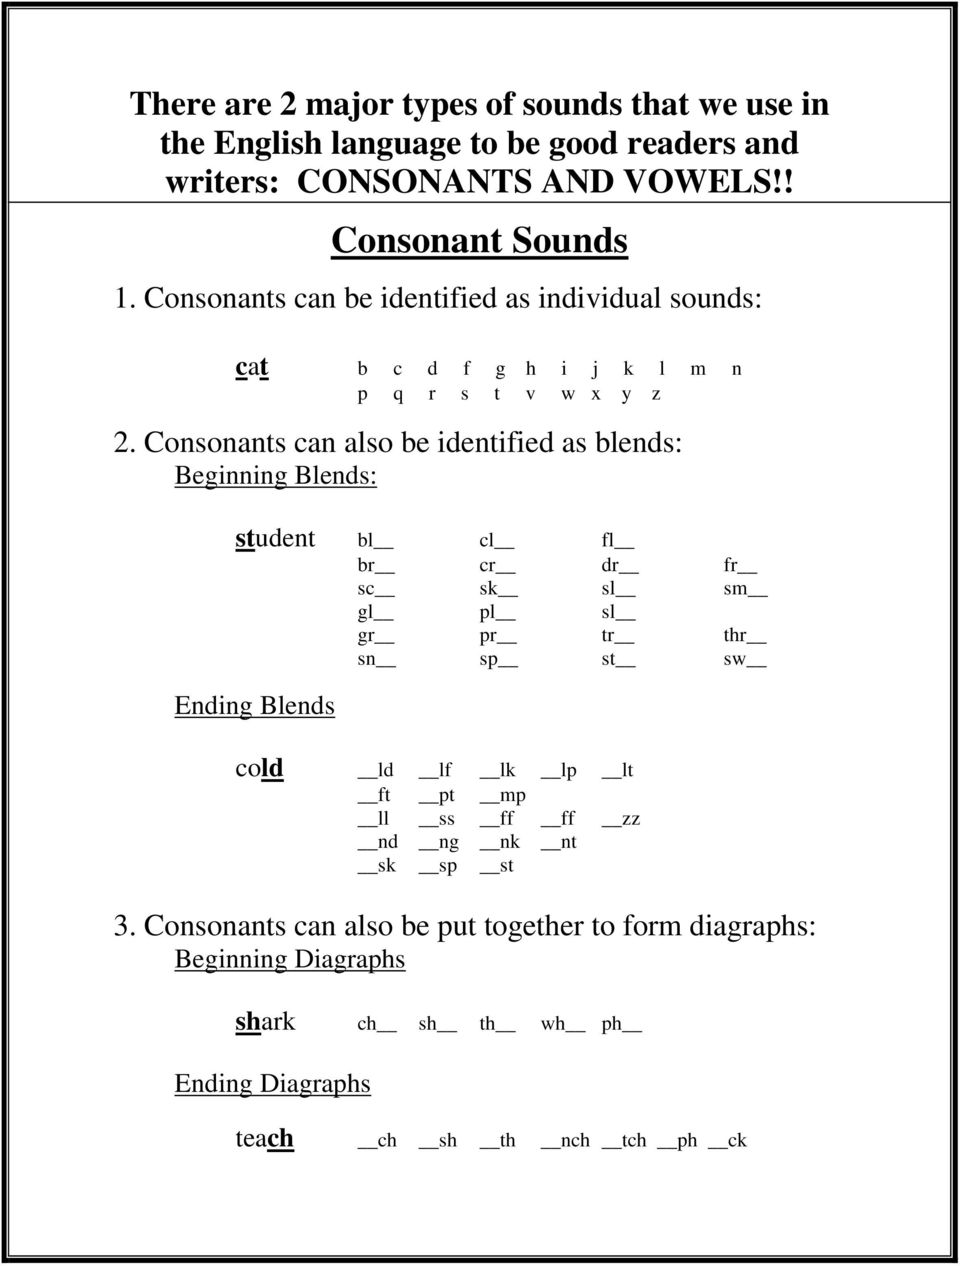 Consonants can also be identified as blends: Beginning Blends: student bl cl fl br cr dr fr sc sk sl sm gl pl sl gr pr tr thr sn sp st sw Ending Blends